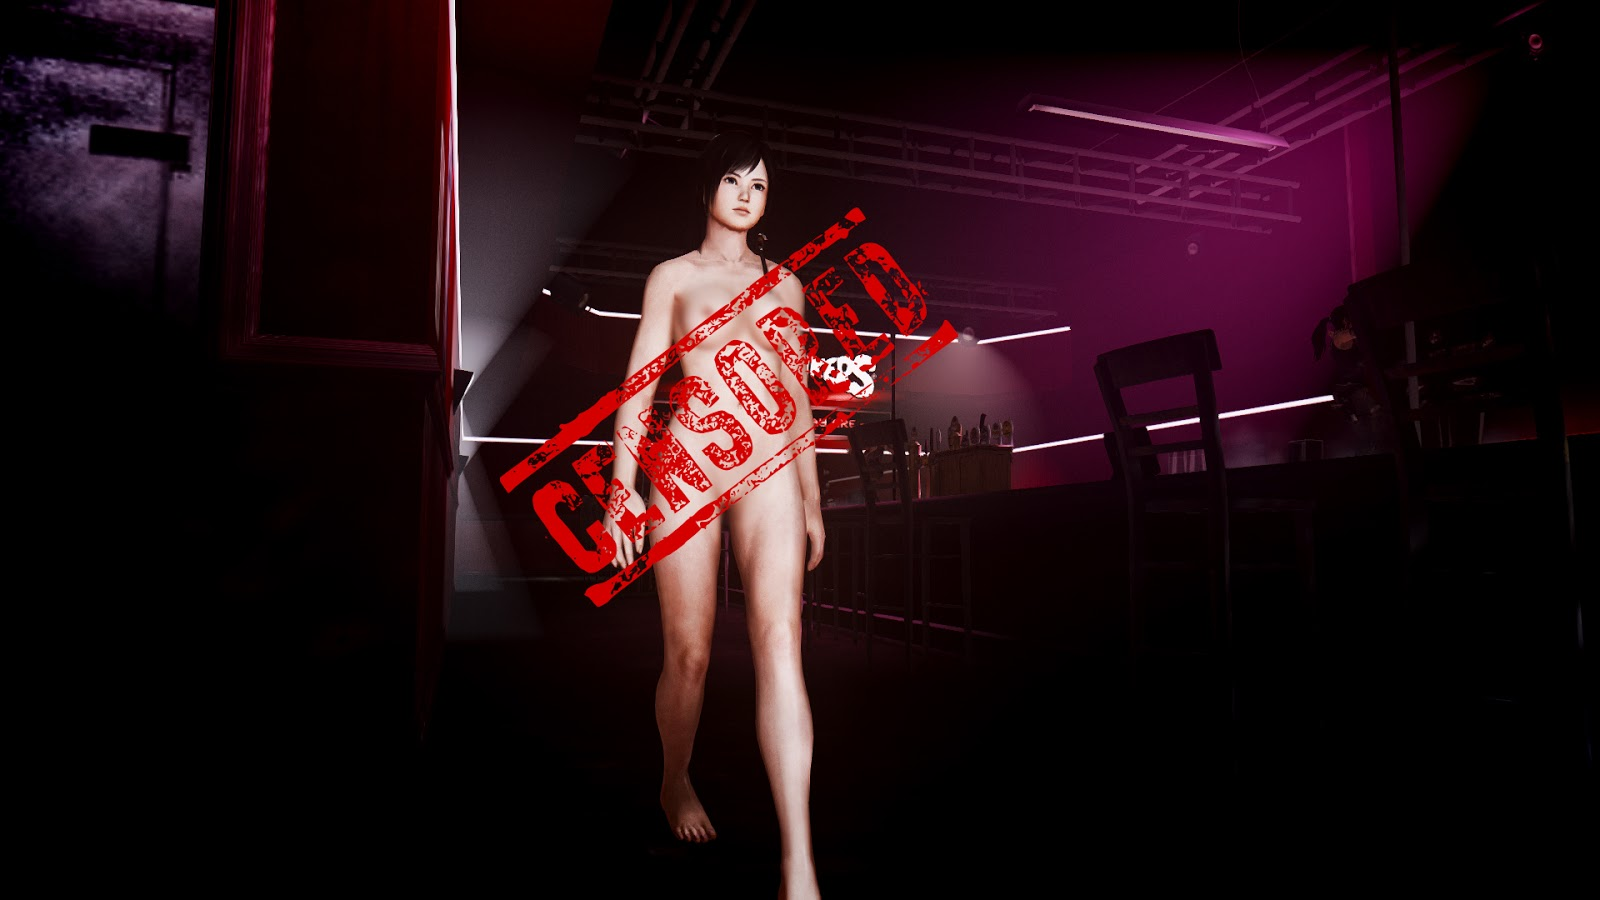 Gta iv naked sex